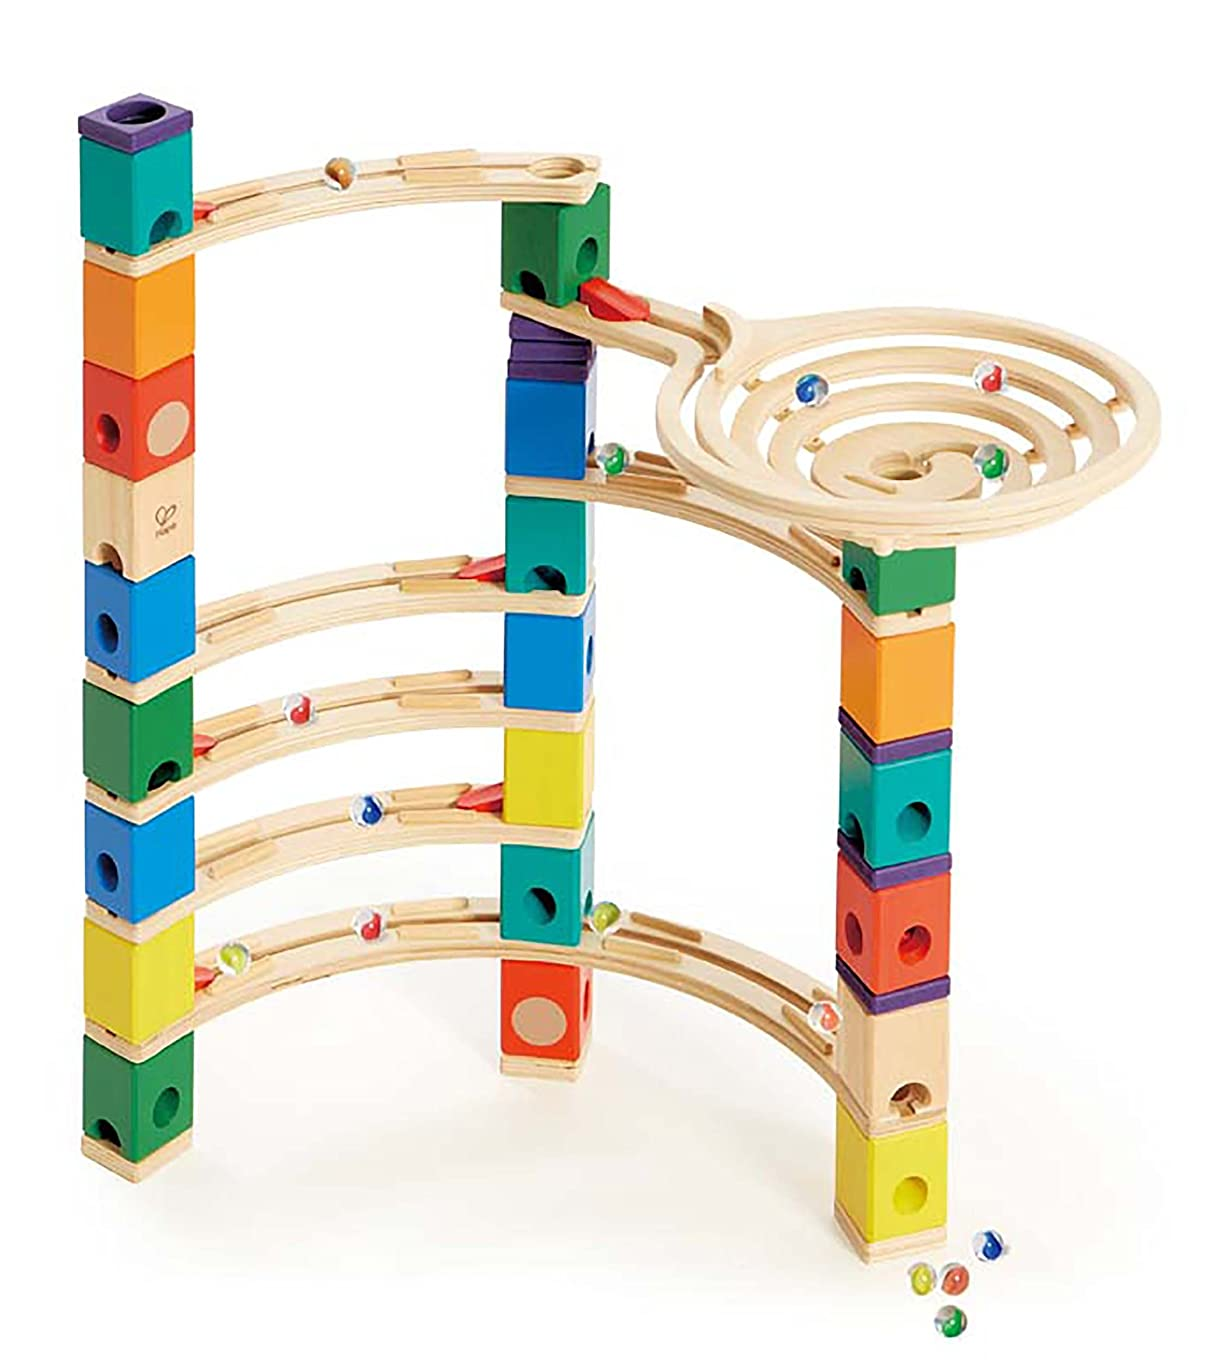 Award Winning Hape Quadrilla Wooden Marble Run Construction - The Xcellerator